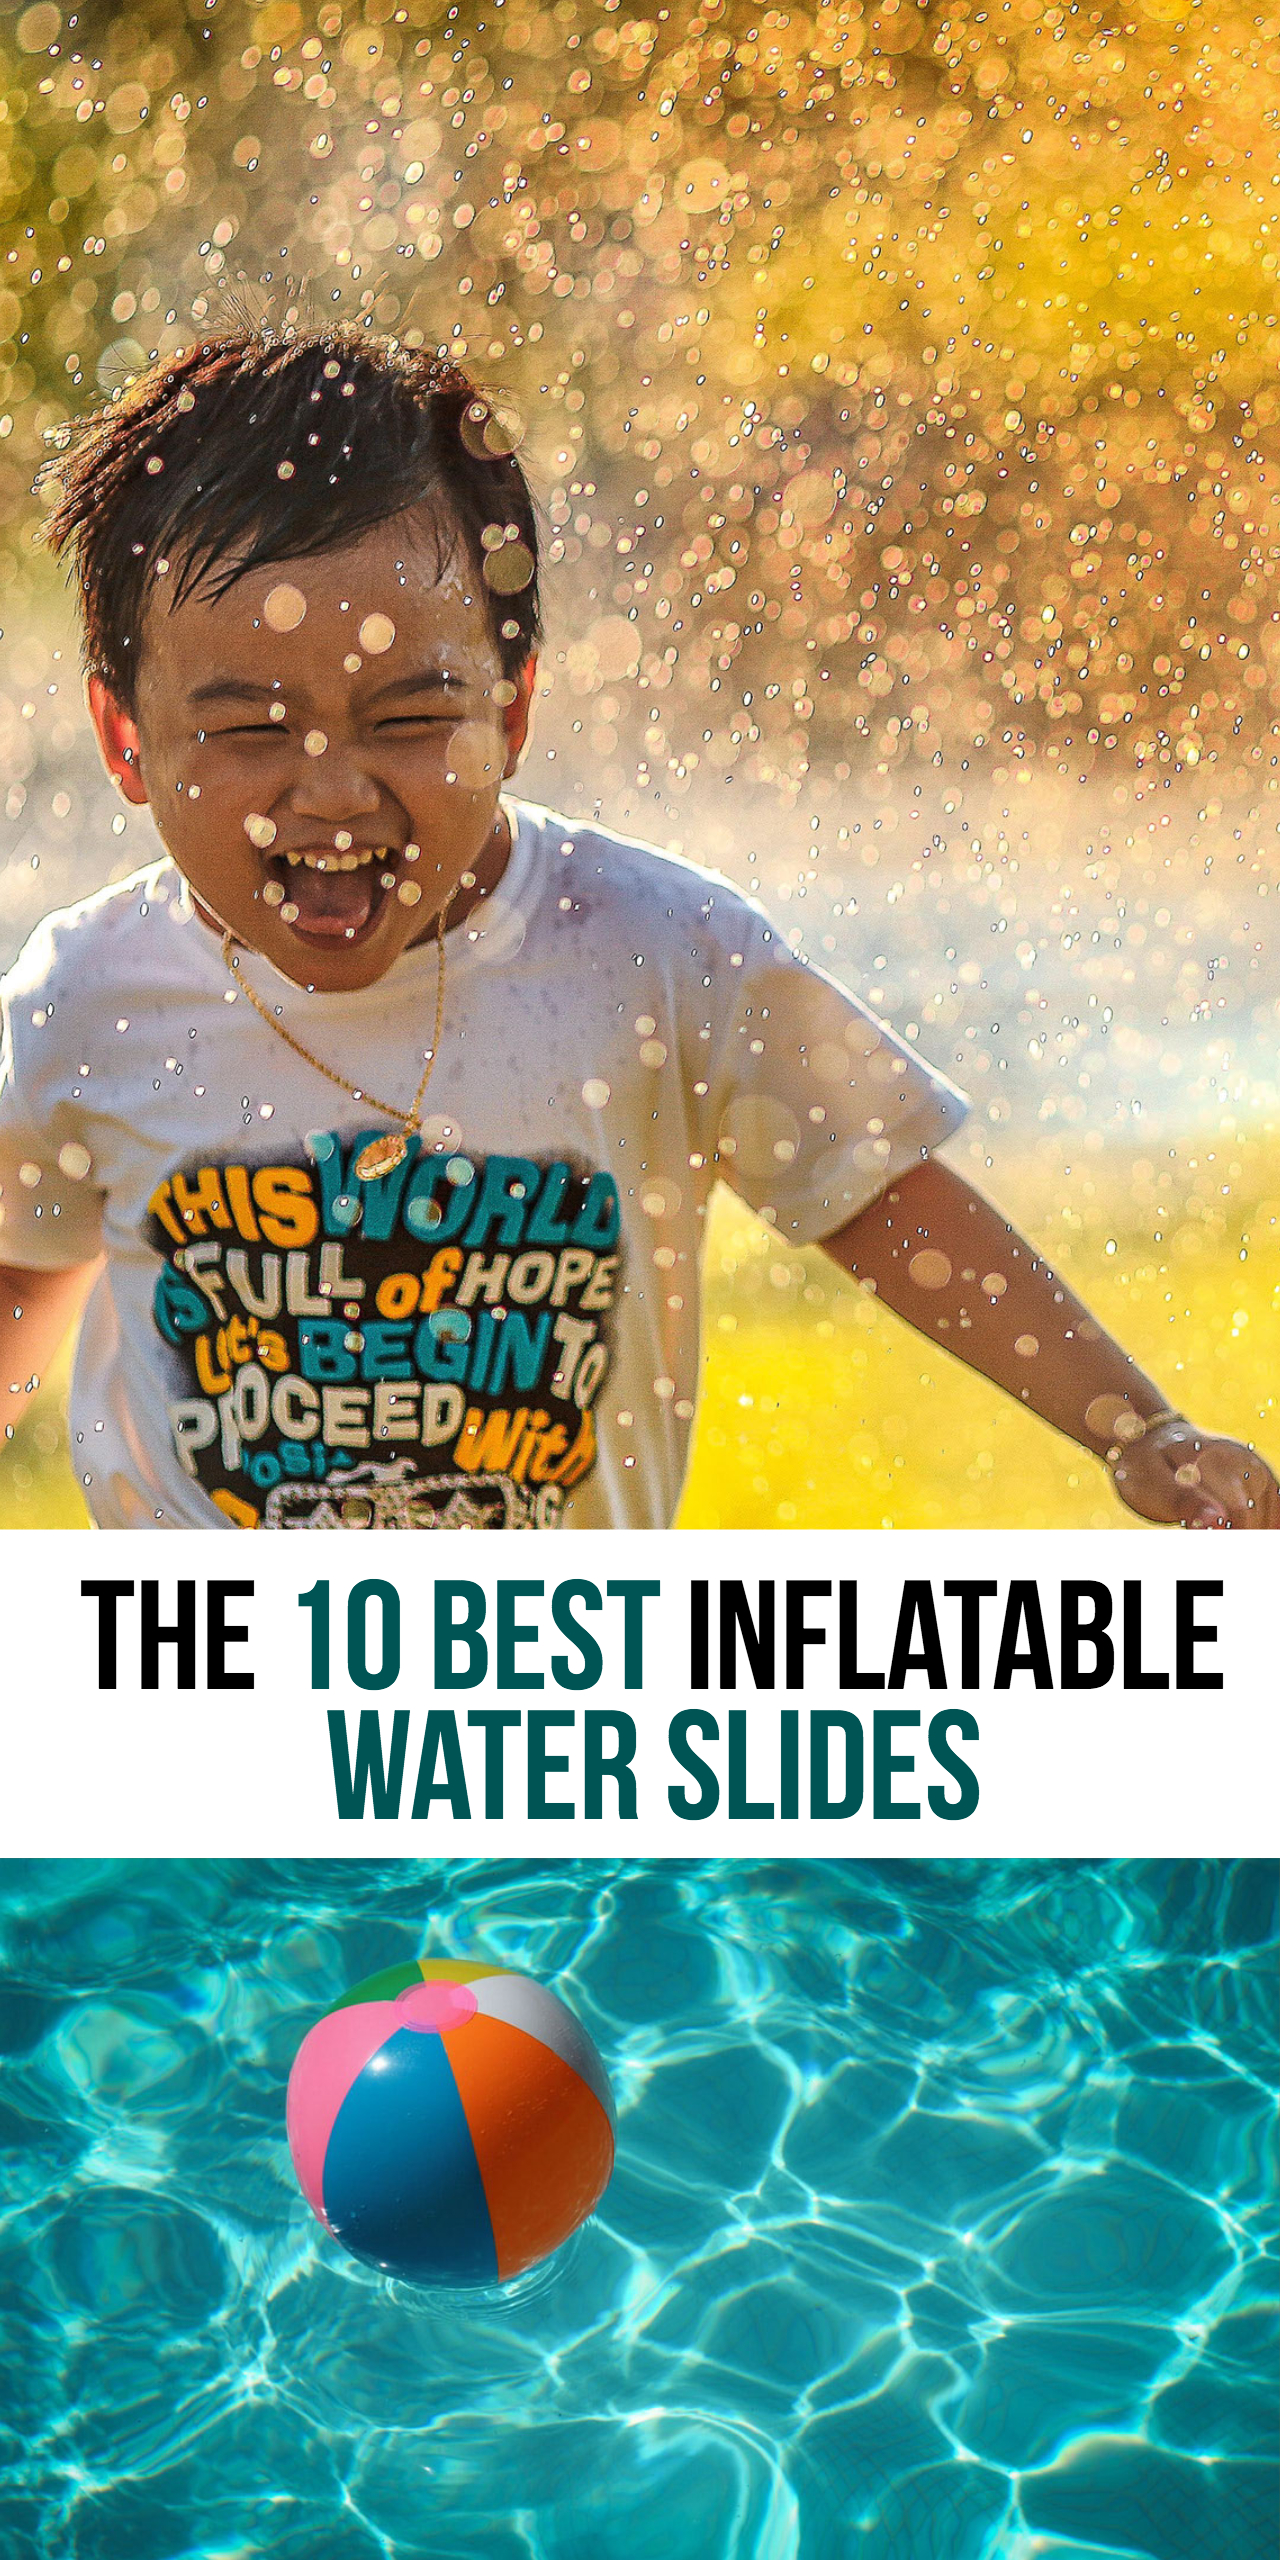 Best inflatable water slides for kids.